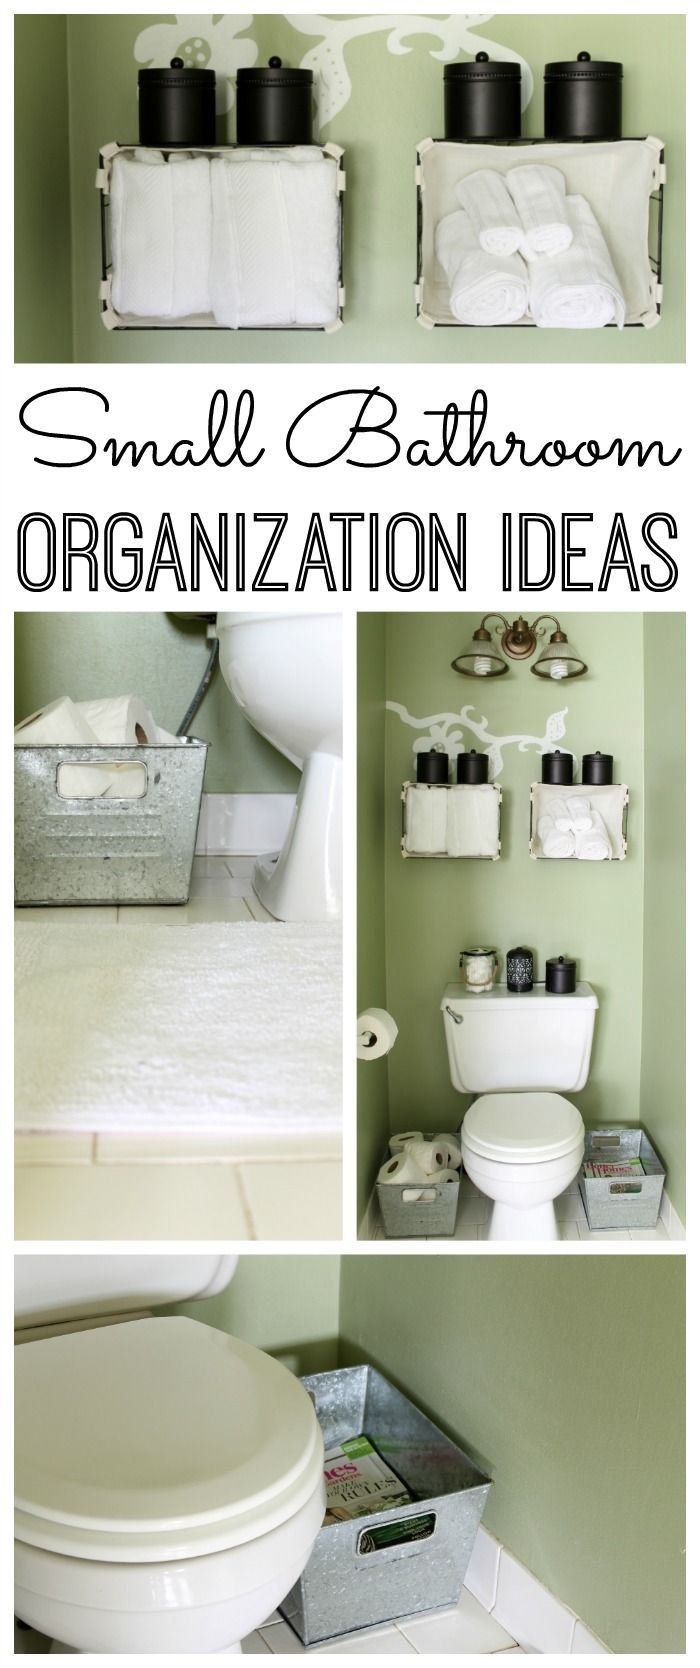 Small Bathroom Organization Ideas Bathroom Organization Small Bathroom Storage Small Bathroom